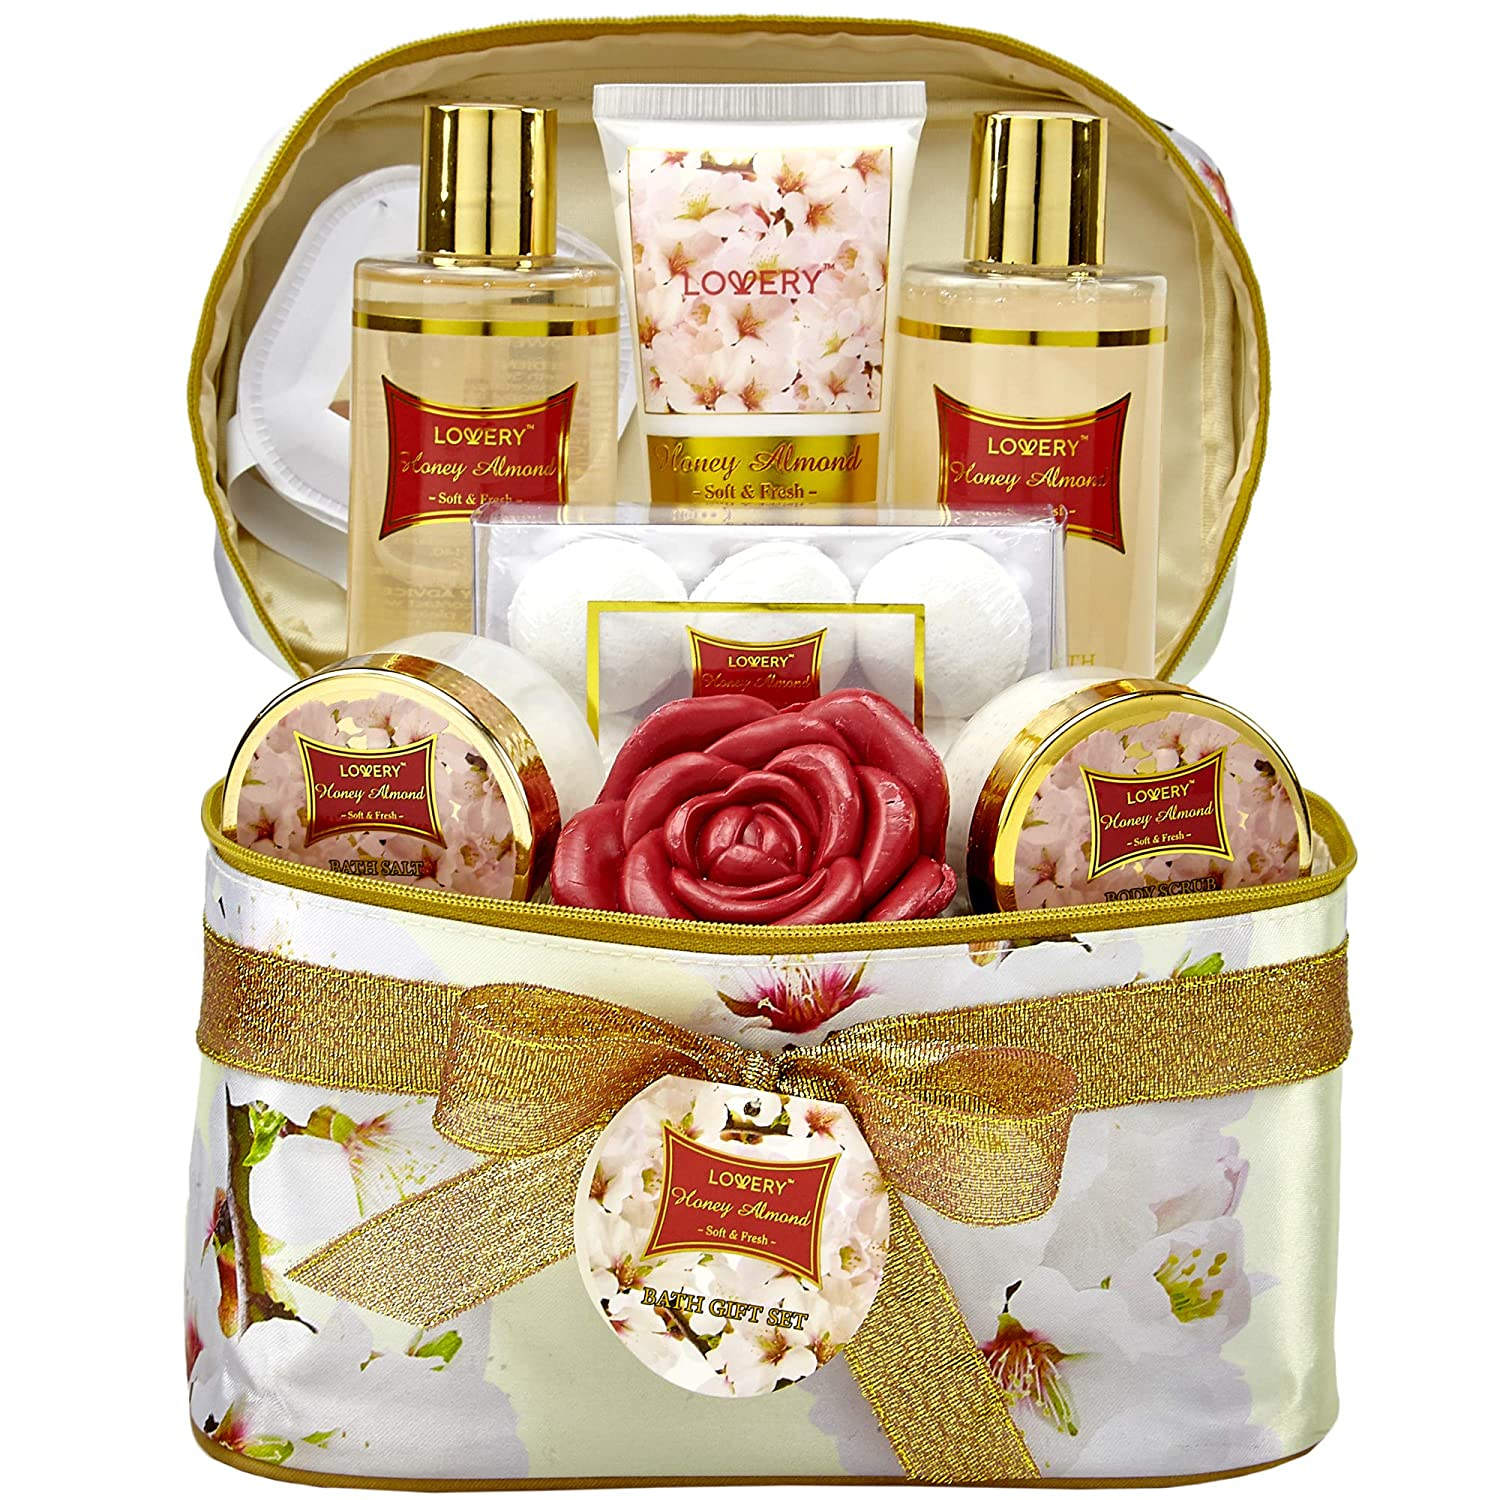 Bath and Body Gift Basket For Women – Honey Almond Home Spa Set with Fragrant Lotions, 6 Bath Bombs, Reusable Travel Cosmetics Bag with Mirror and More - 14 Piece Set